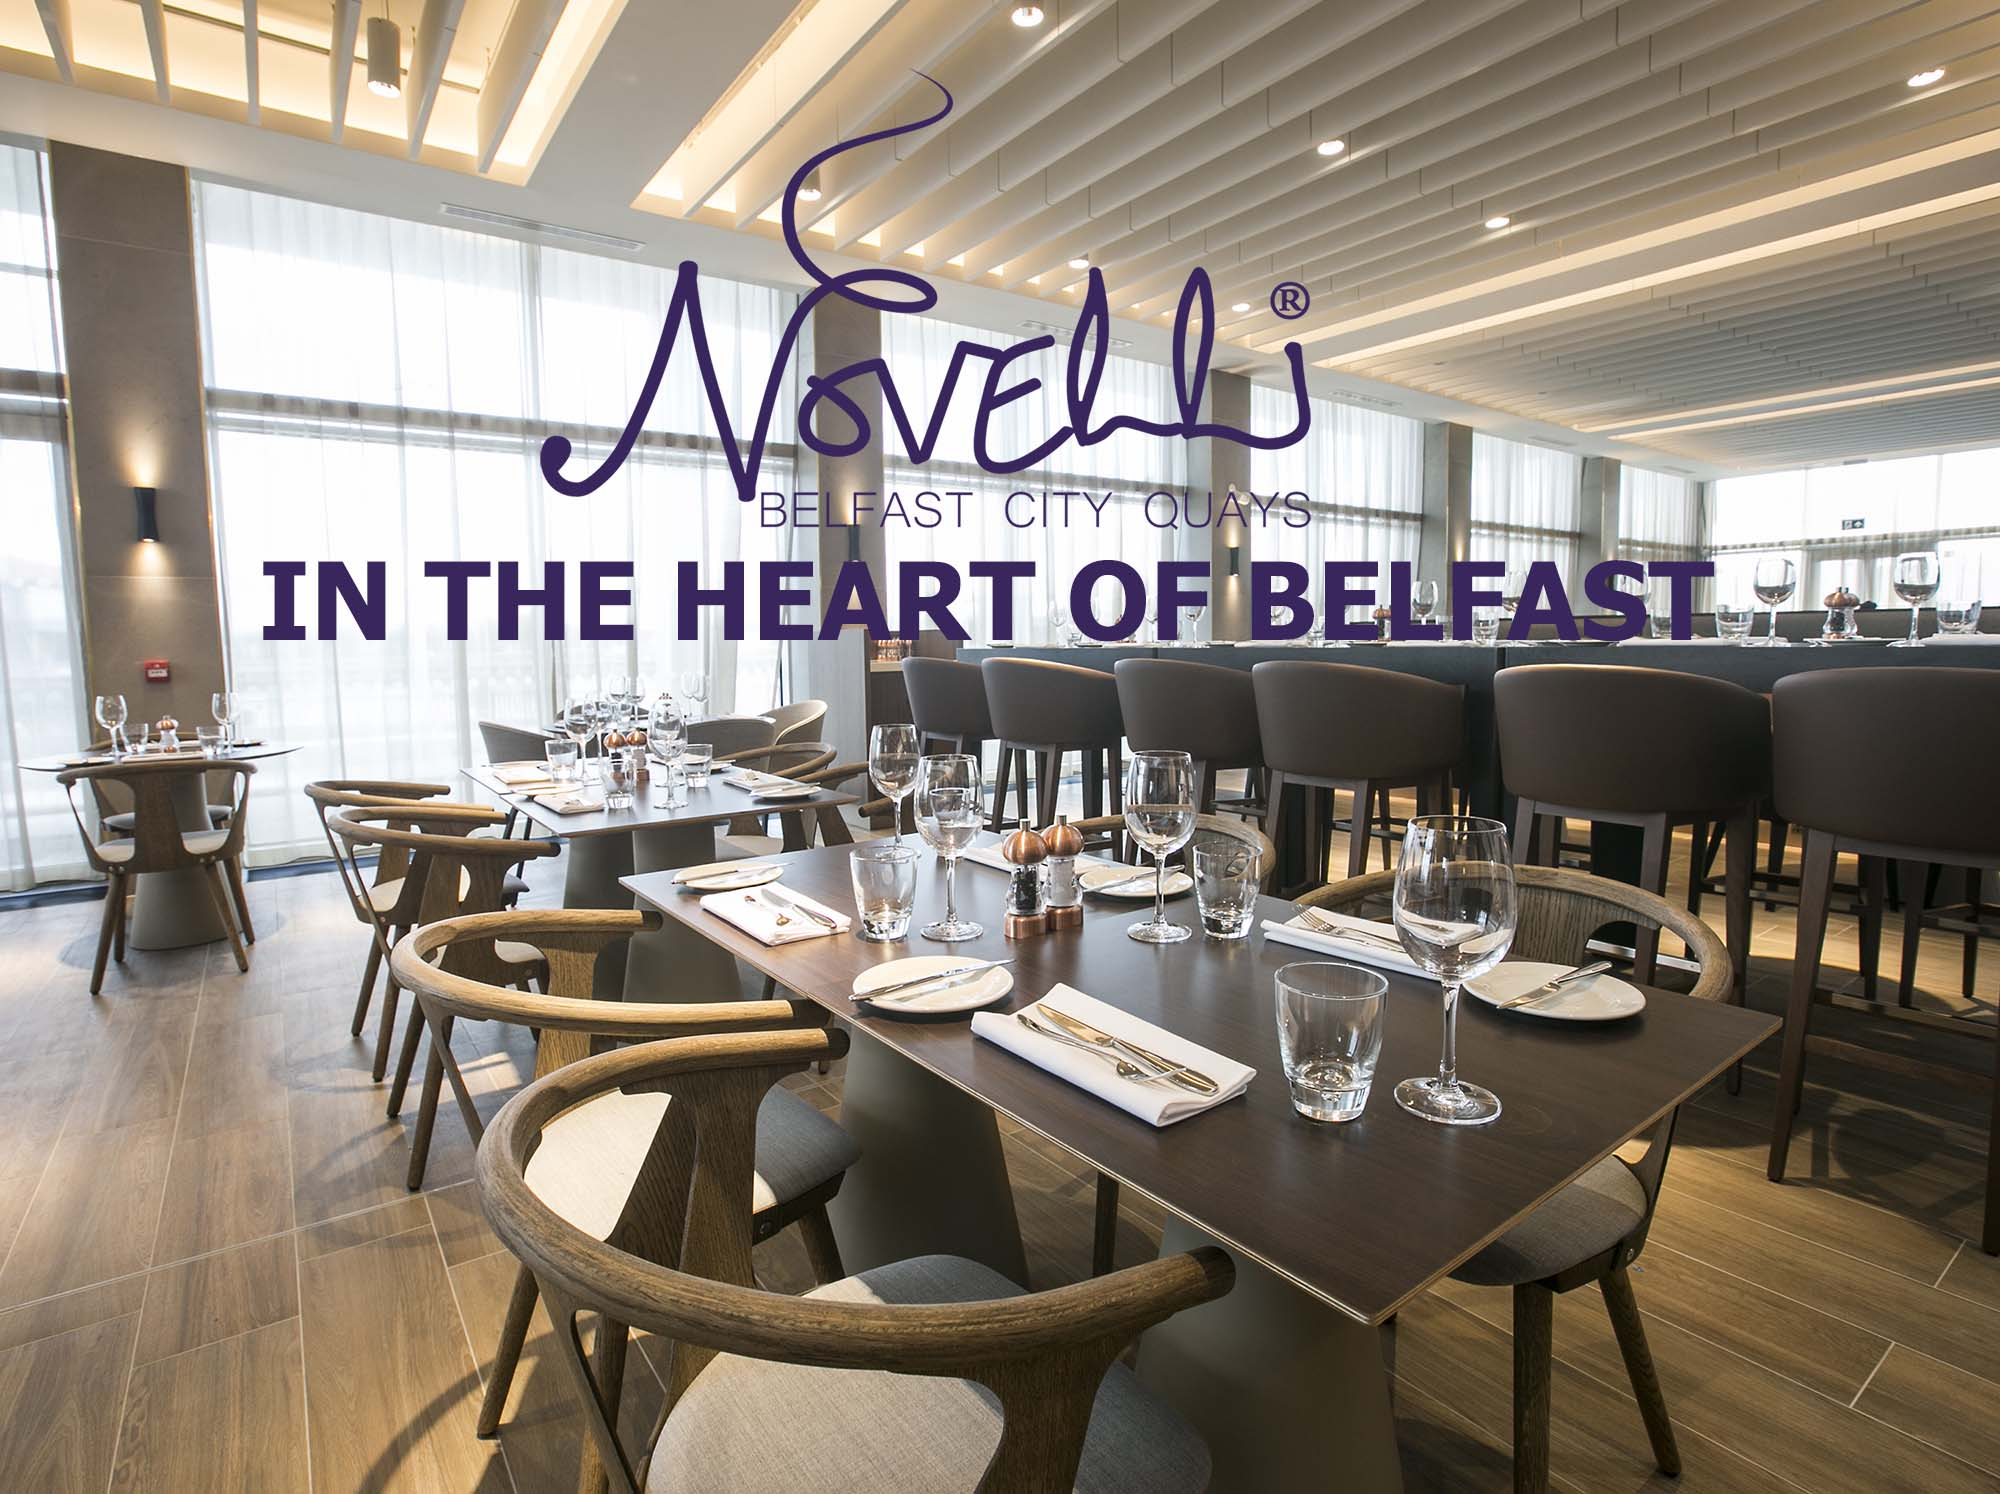 Novelli in the heart of Belfast tables with plates and glass utensils